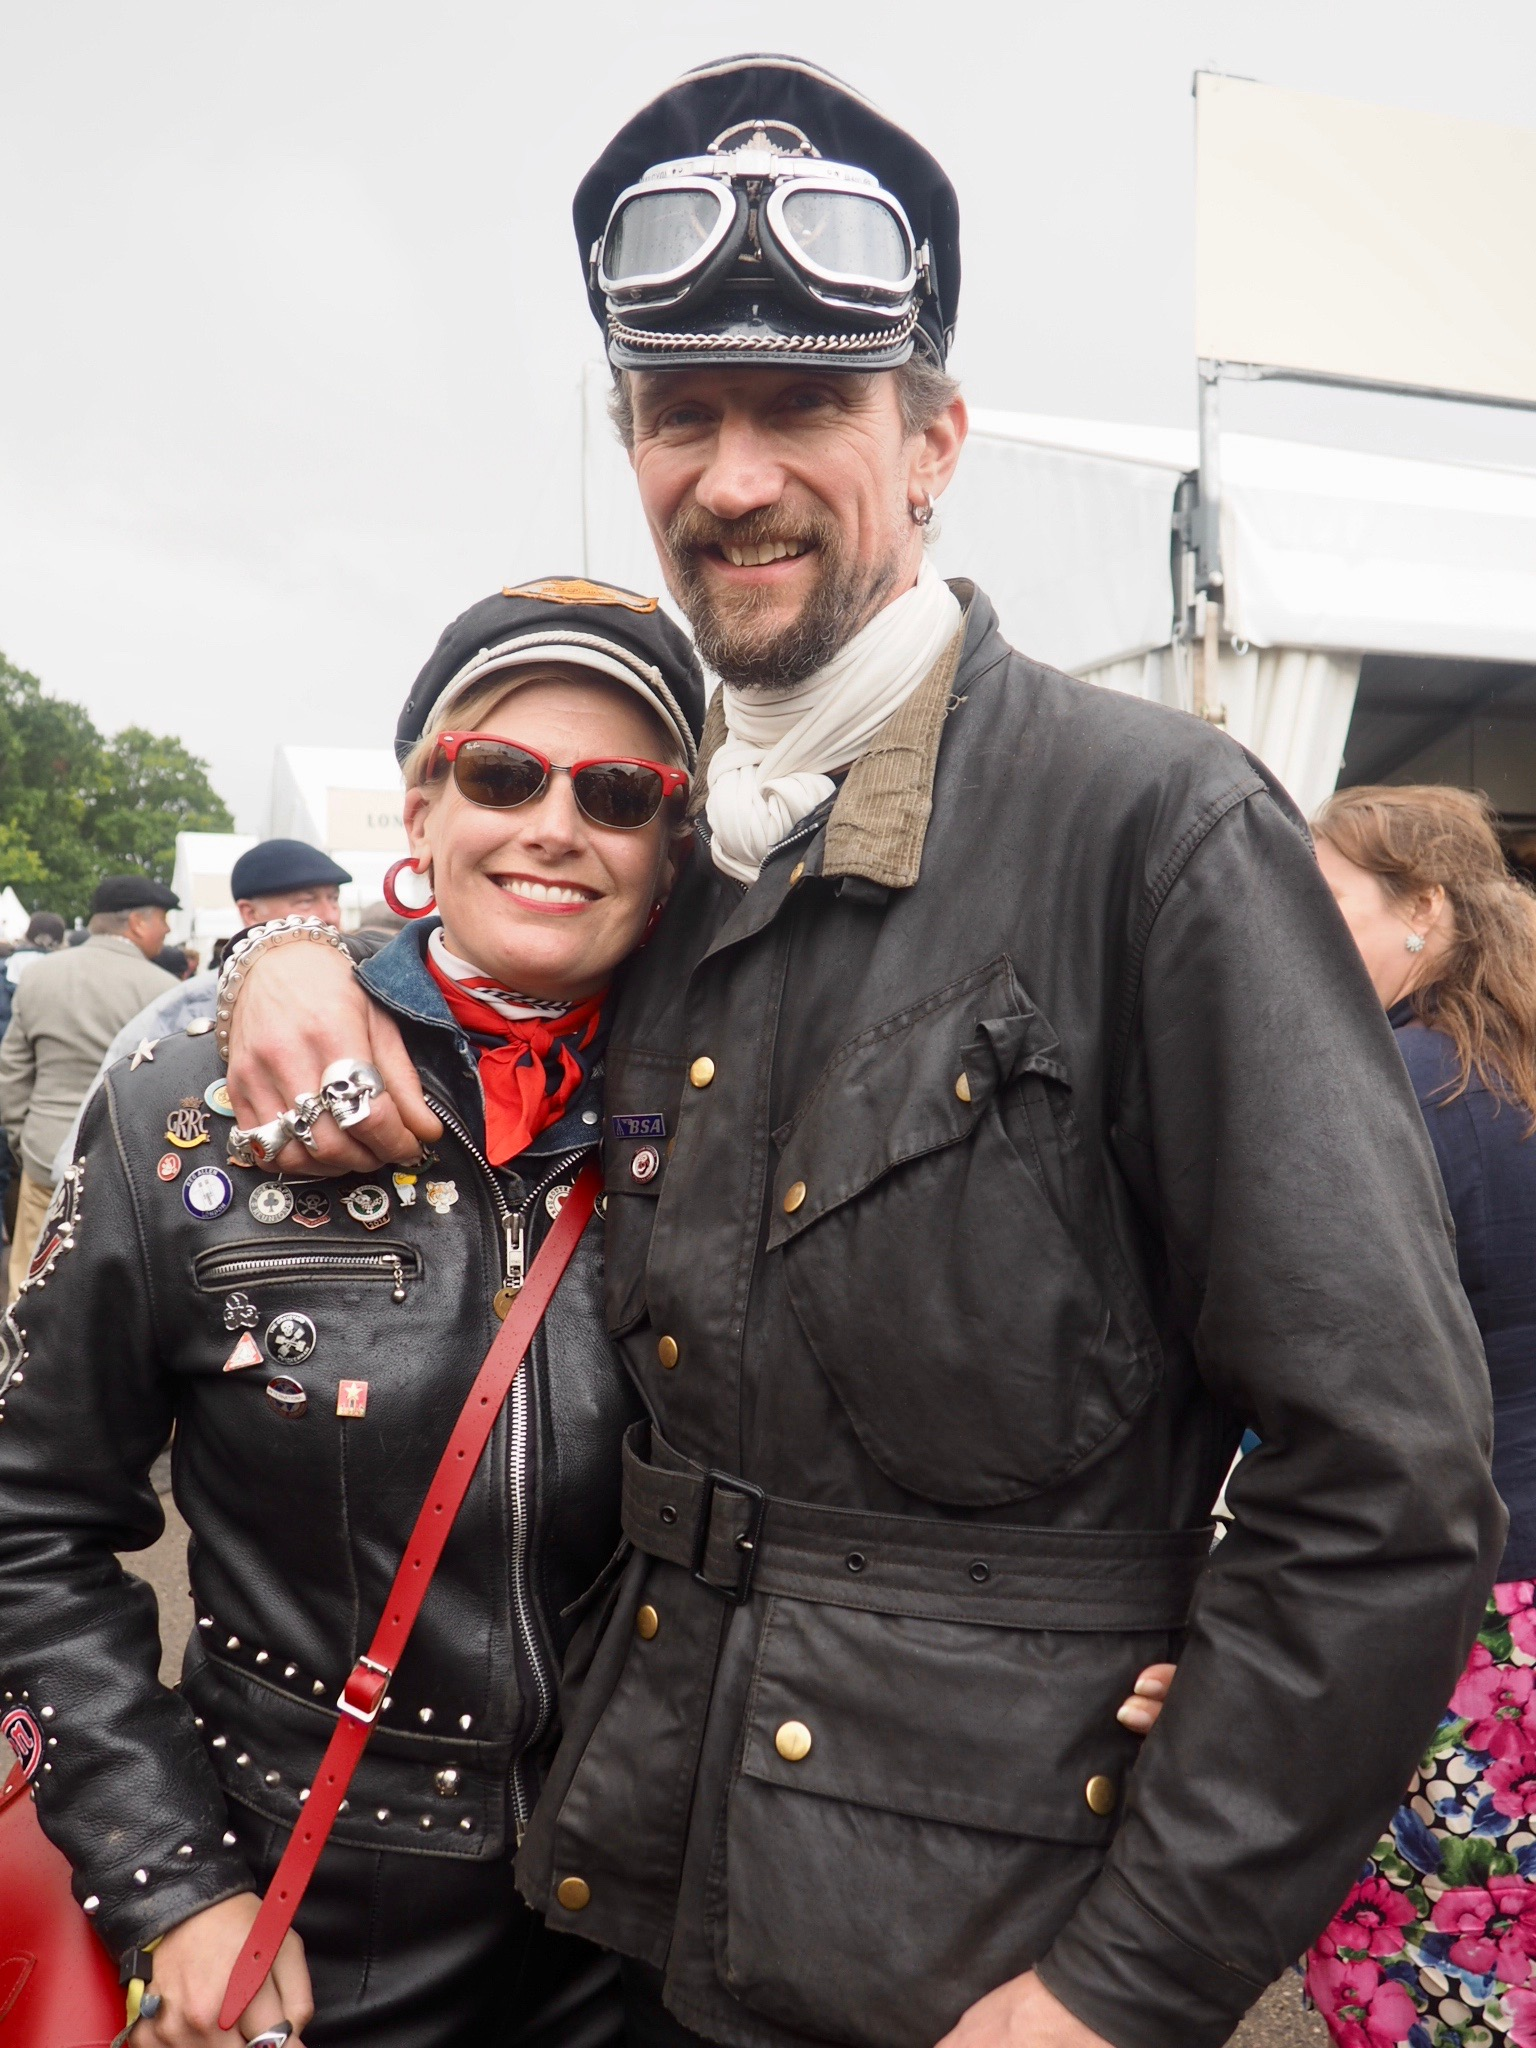 Bikers at Goodwood Revival